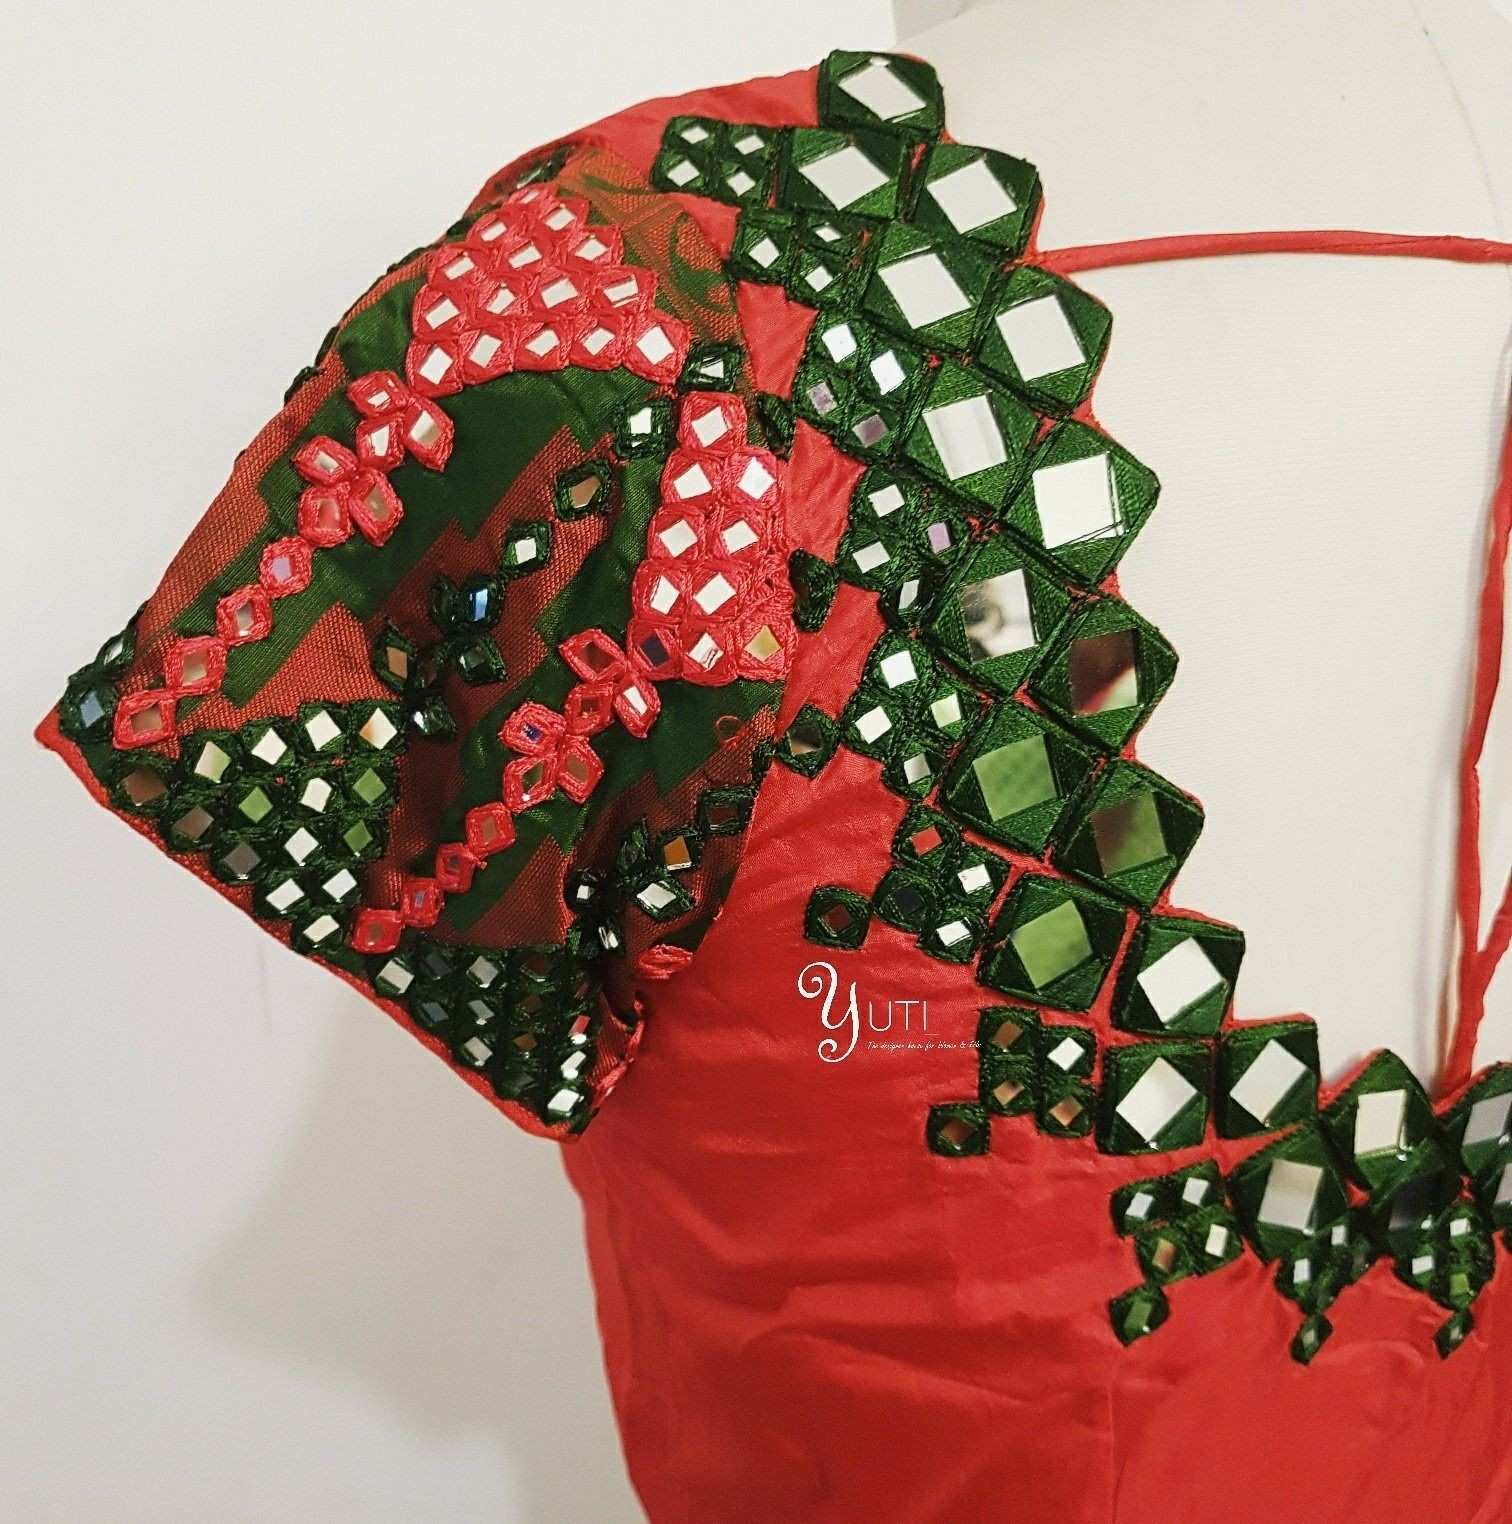 A plain red blouse decorated with mirror and threads at YUTI For